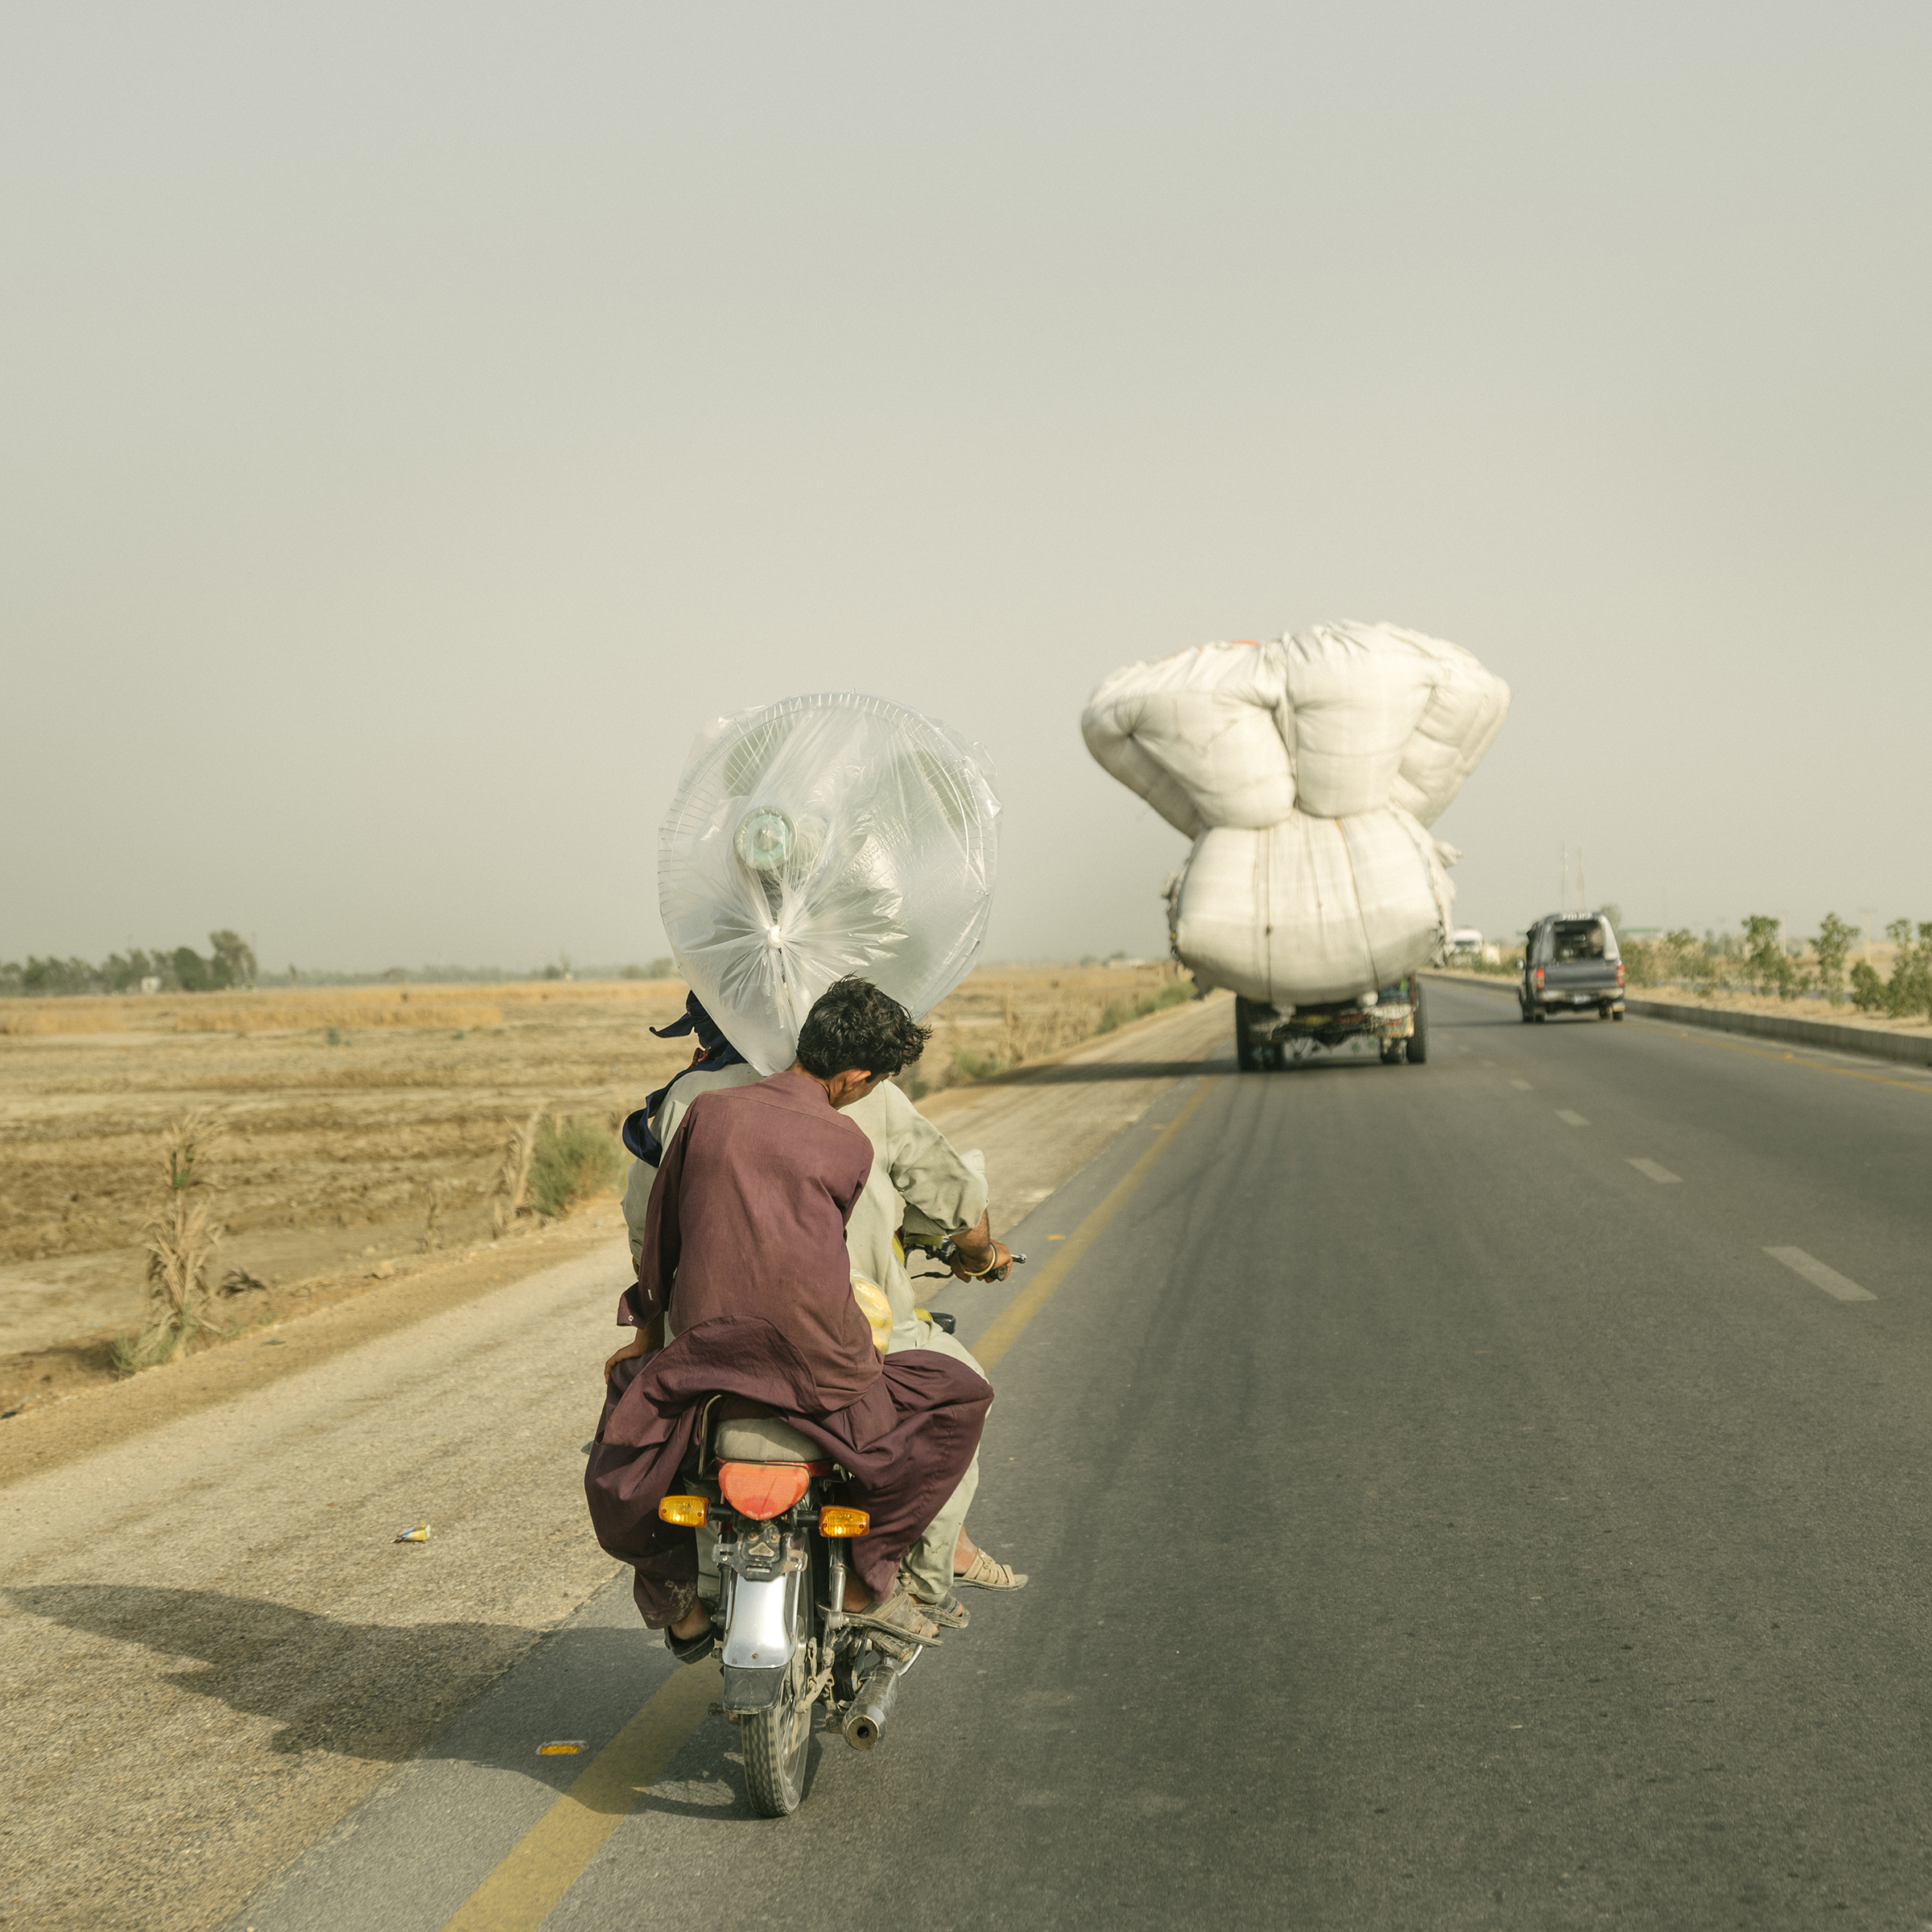 On the outskirts of Jacobabad, men return from a market after purchasing a large fan on June 30.